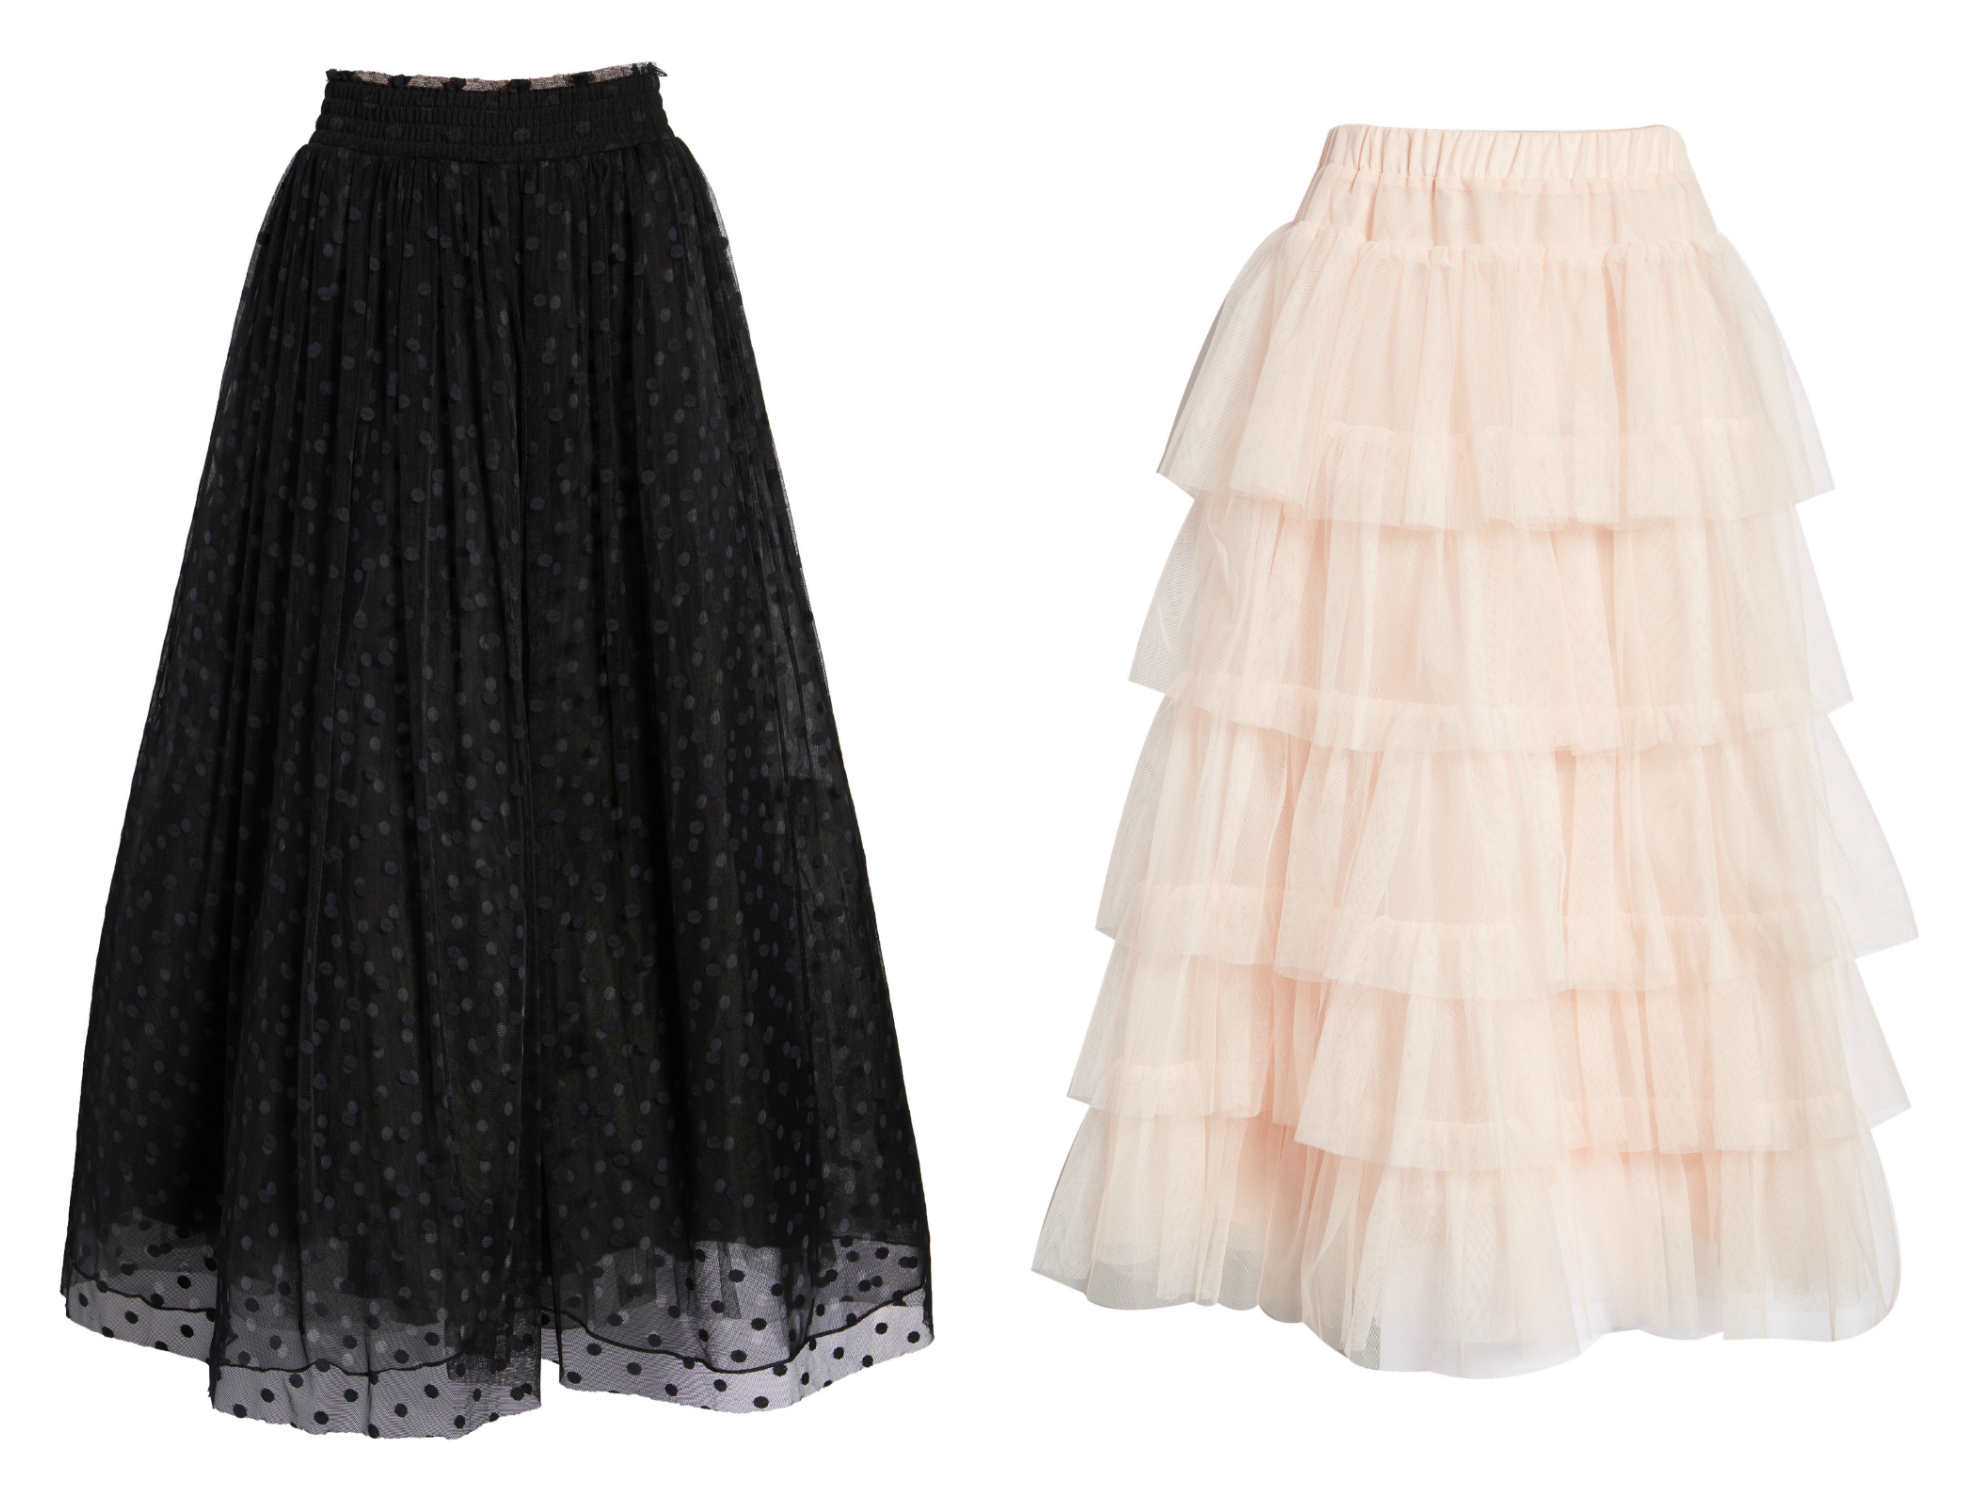 Atlantic_Pacific_Halogen_nordstrom_blair_eadie_fashion_blogger_capsule_collection_fall_october_2018_winter_ootd_tulle_skirt.jpg